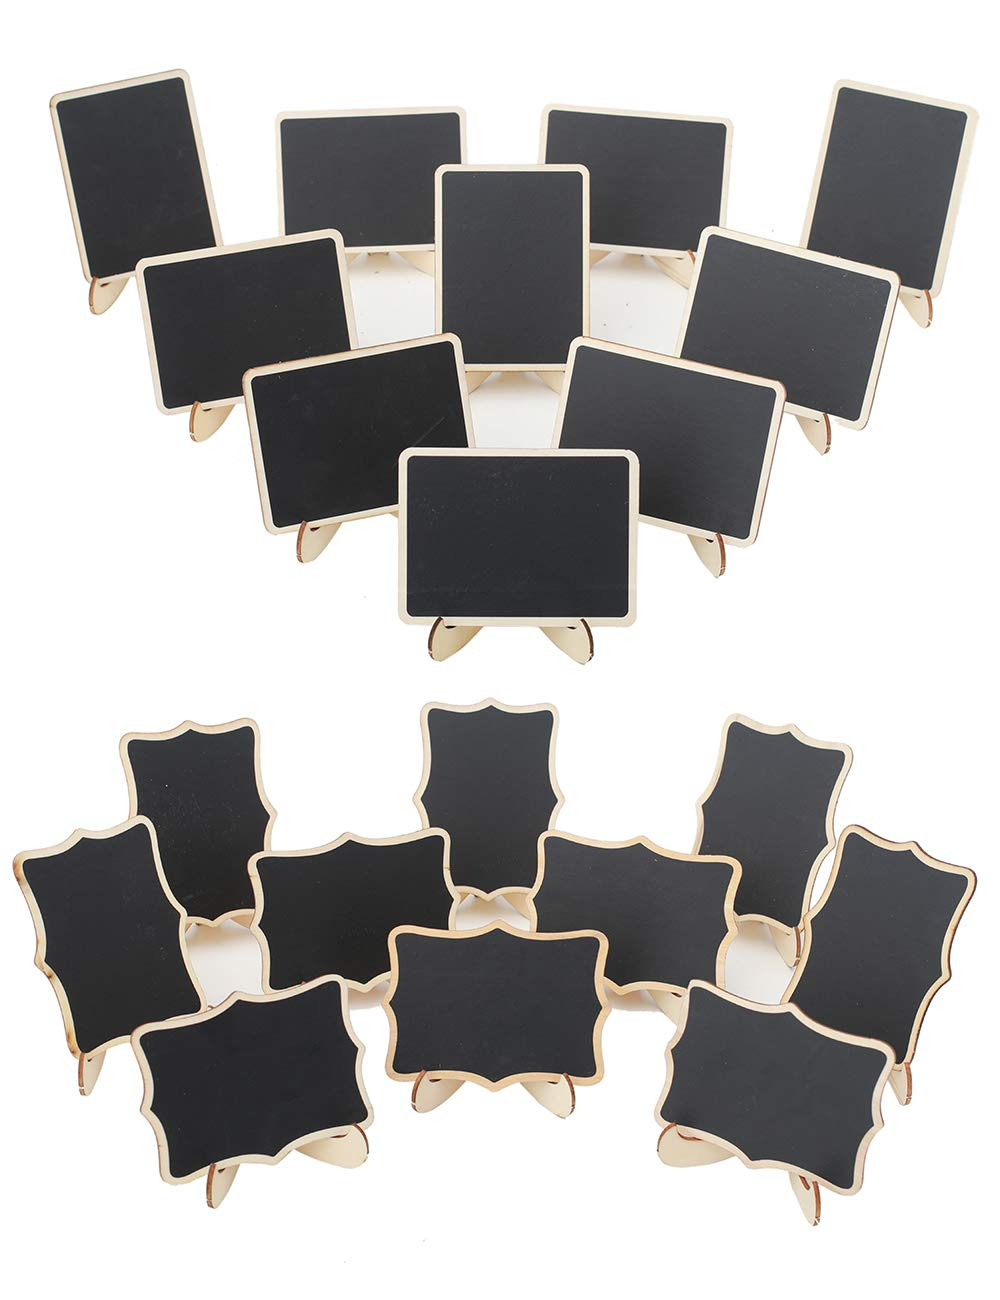 YiTai 20 Pack Wood Mini Chalkboards Signs with Easel Stand, Place Cards, Two Styles Chalkboards Blackboard for Weddings, Message Board Signs, Food Signs and Special Event Decoration